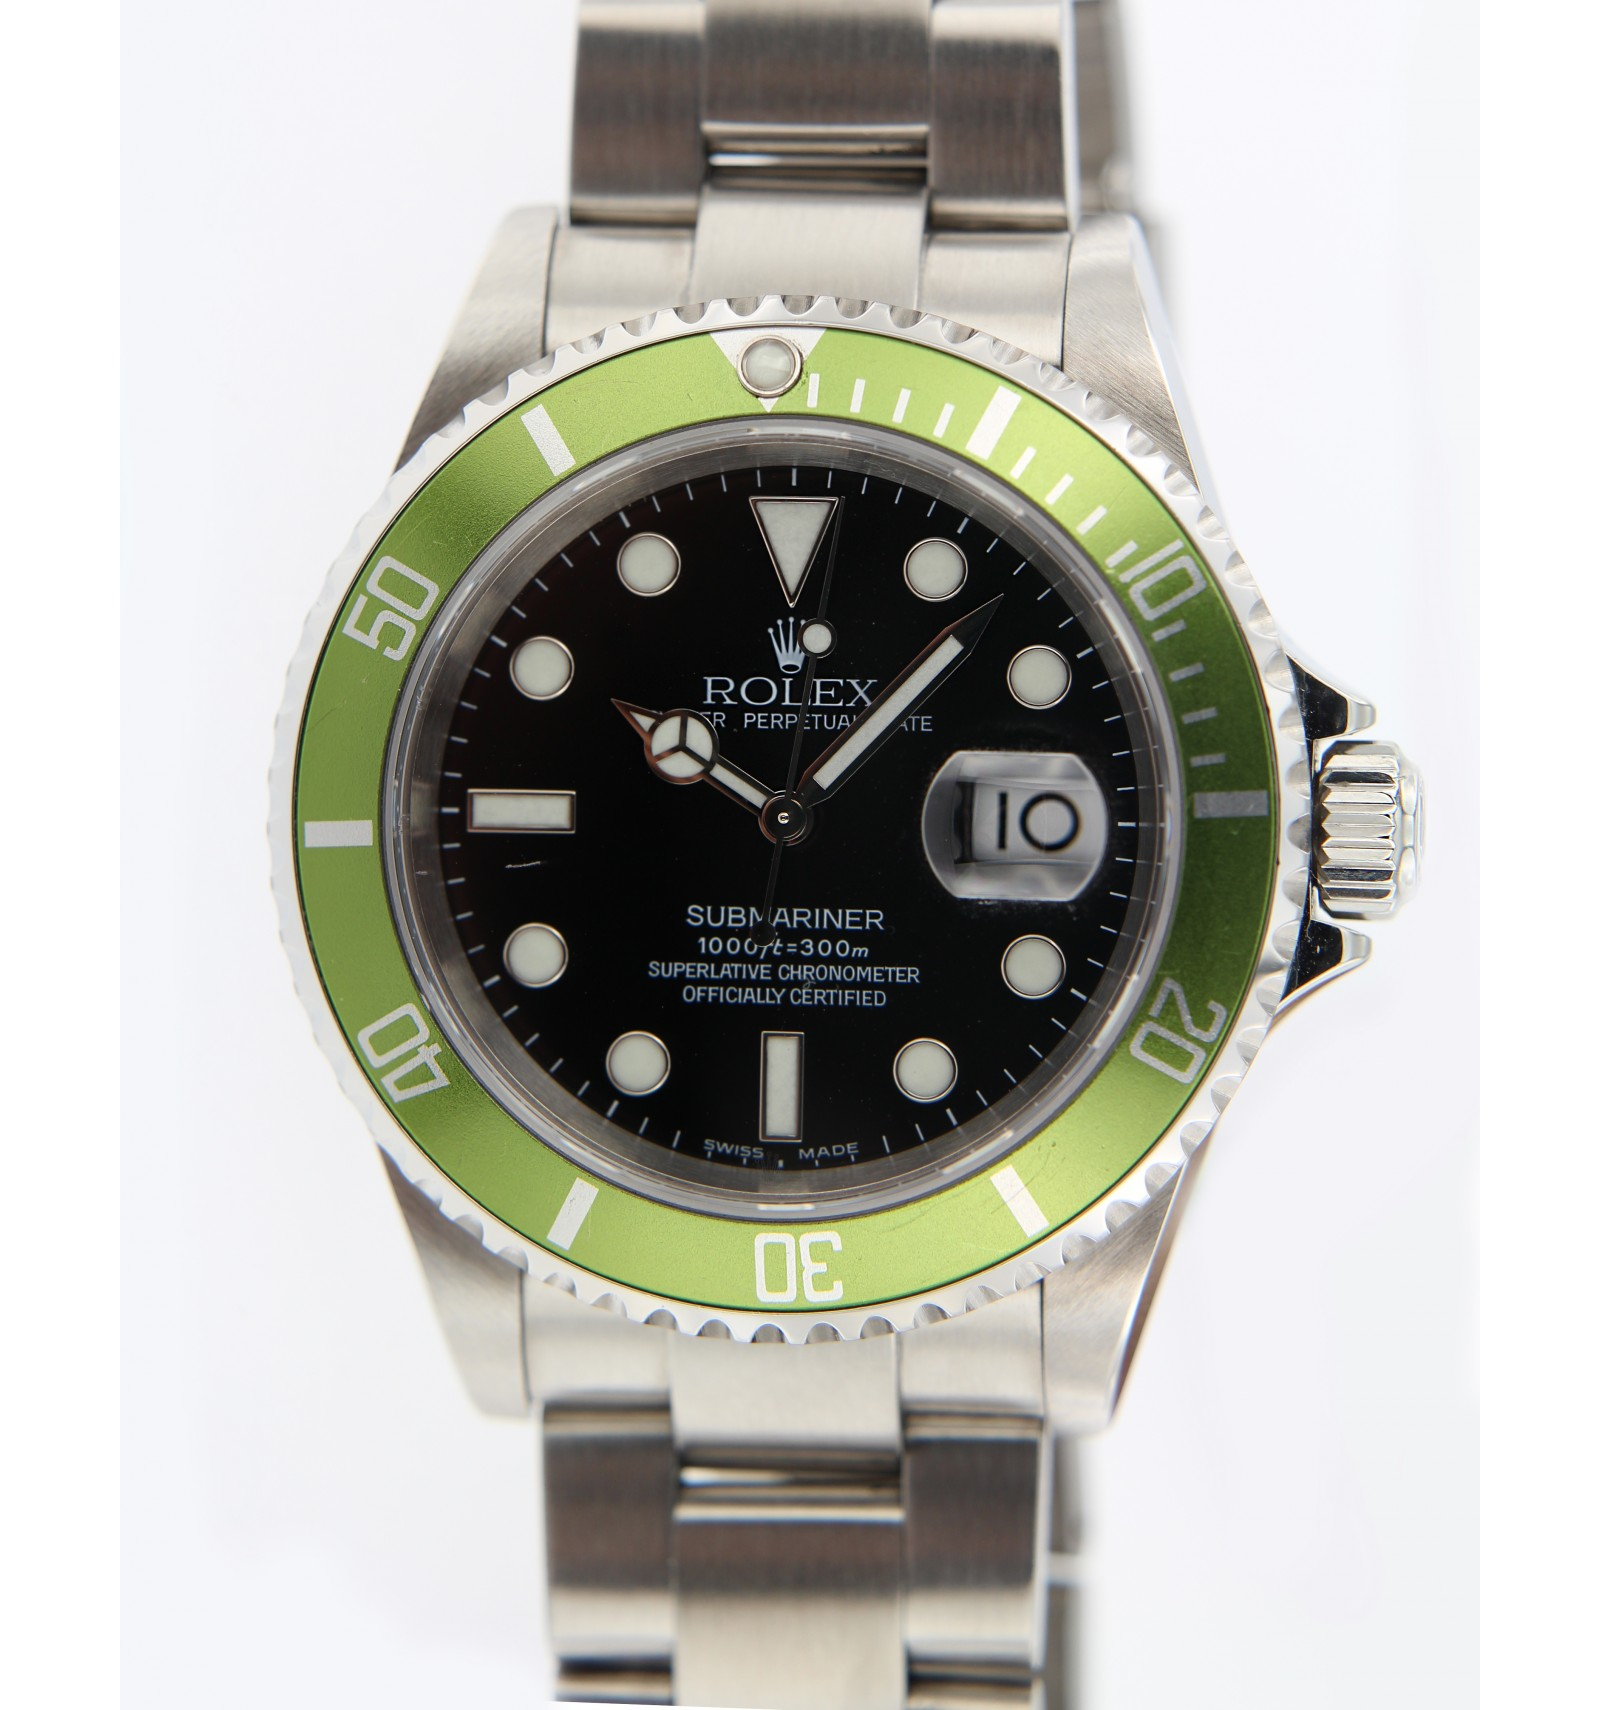 7bbd23ccb78 Rolex Submariner verde Limit Edition Fat Four - Ferro Gioielli